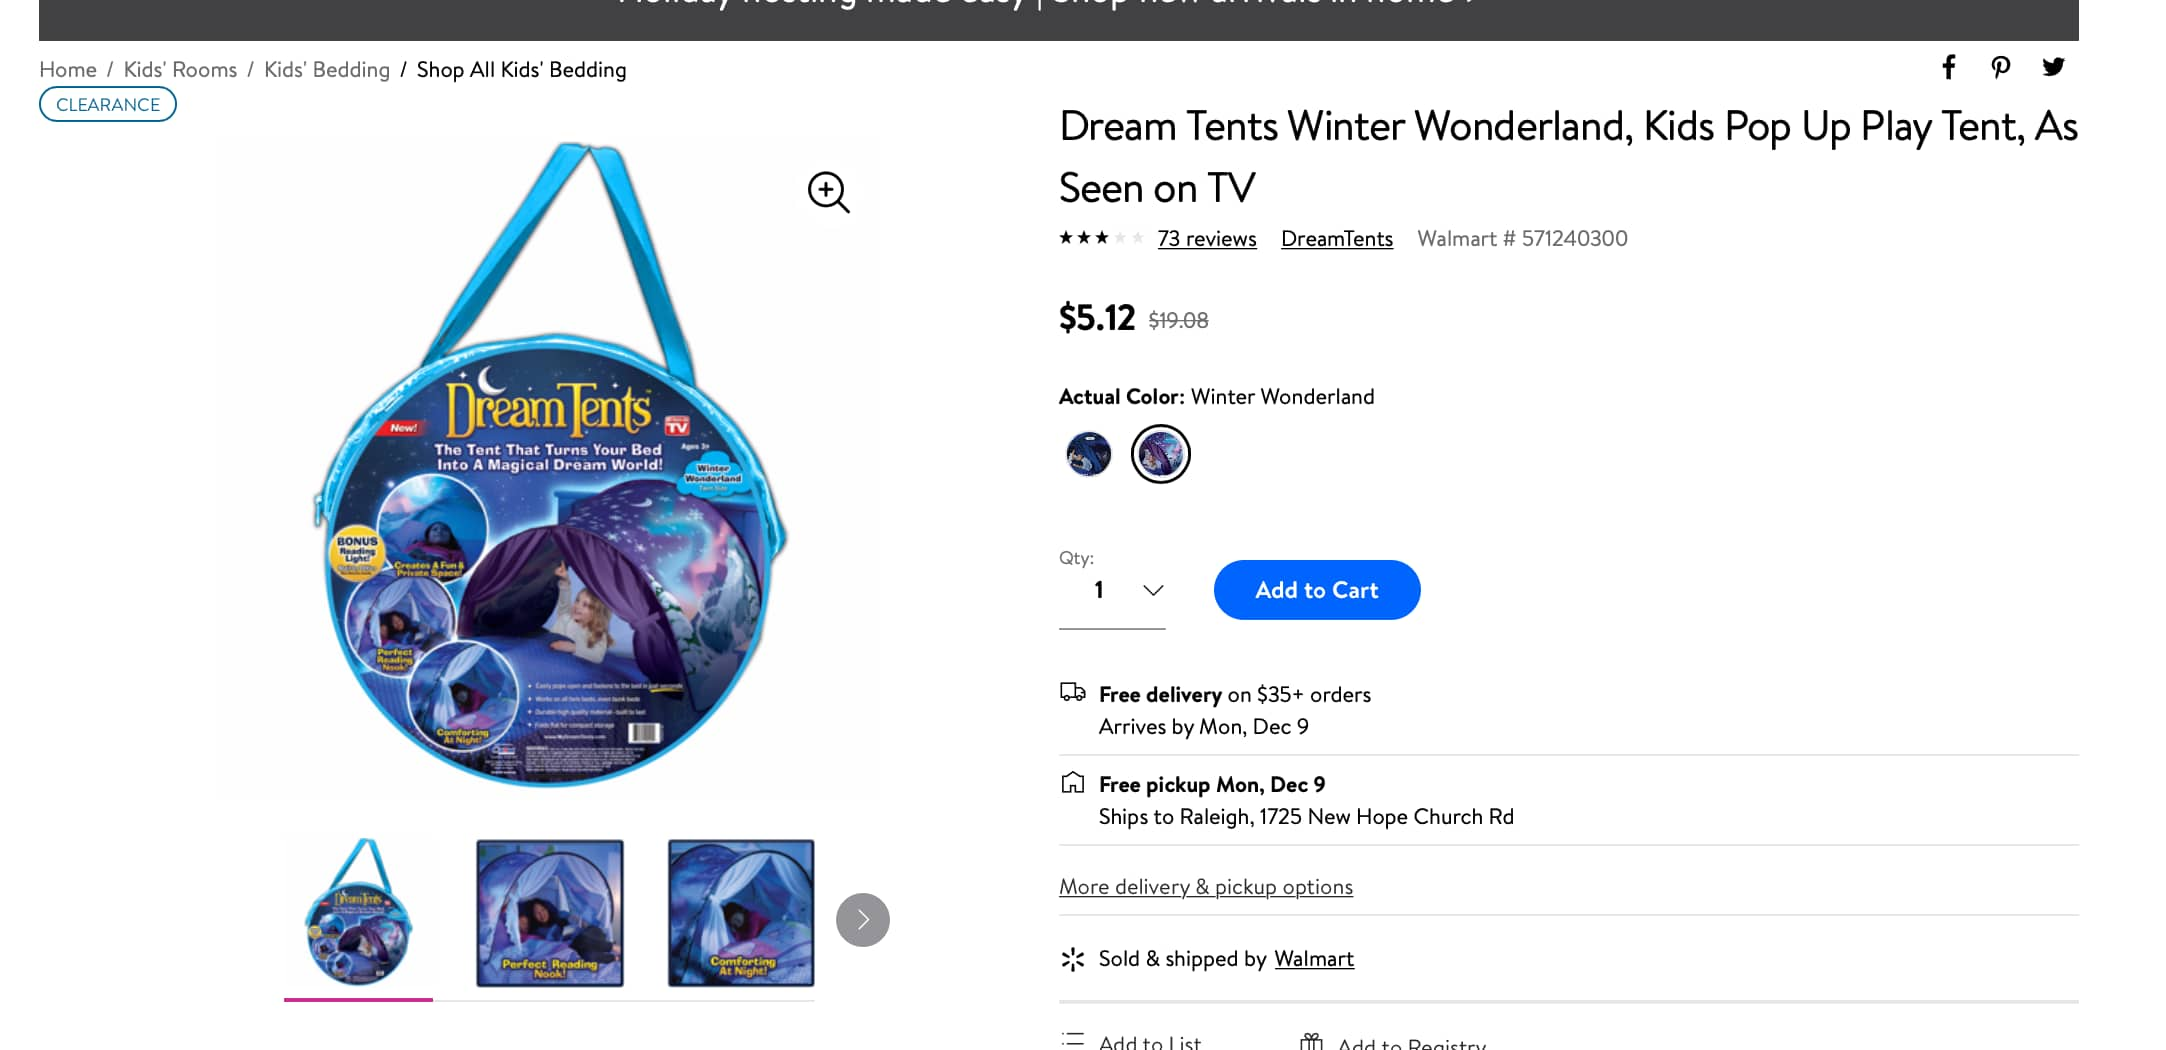 Dream Tents Kids Pop Up Play Bed Tent (Winter Wonderland or Space Adventure) $4.61 (after cash back) @ Walmart FS w/$35, Free Store Pick-up.